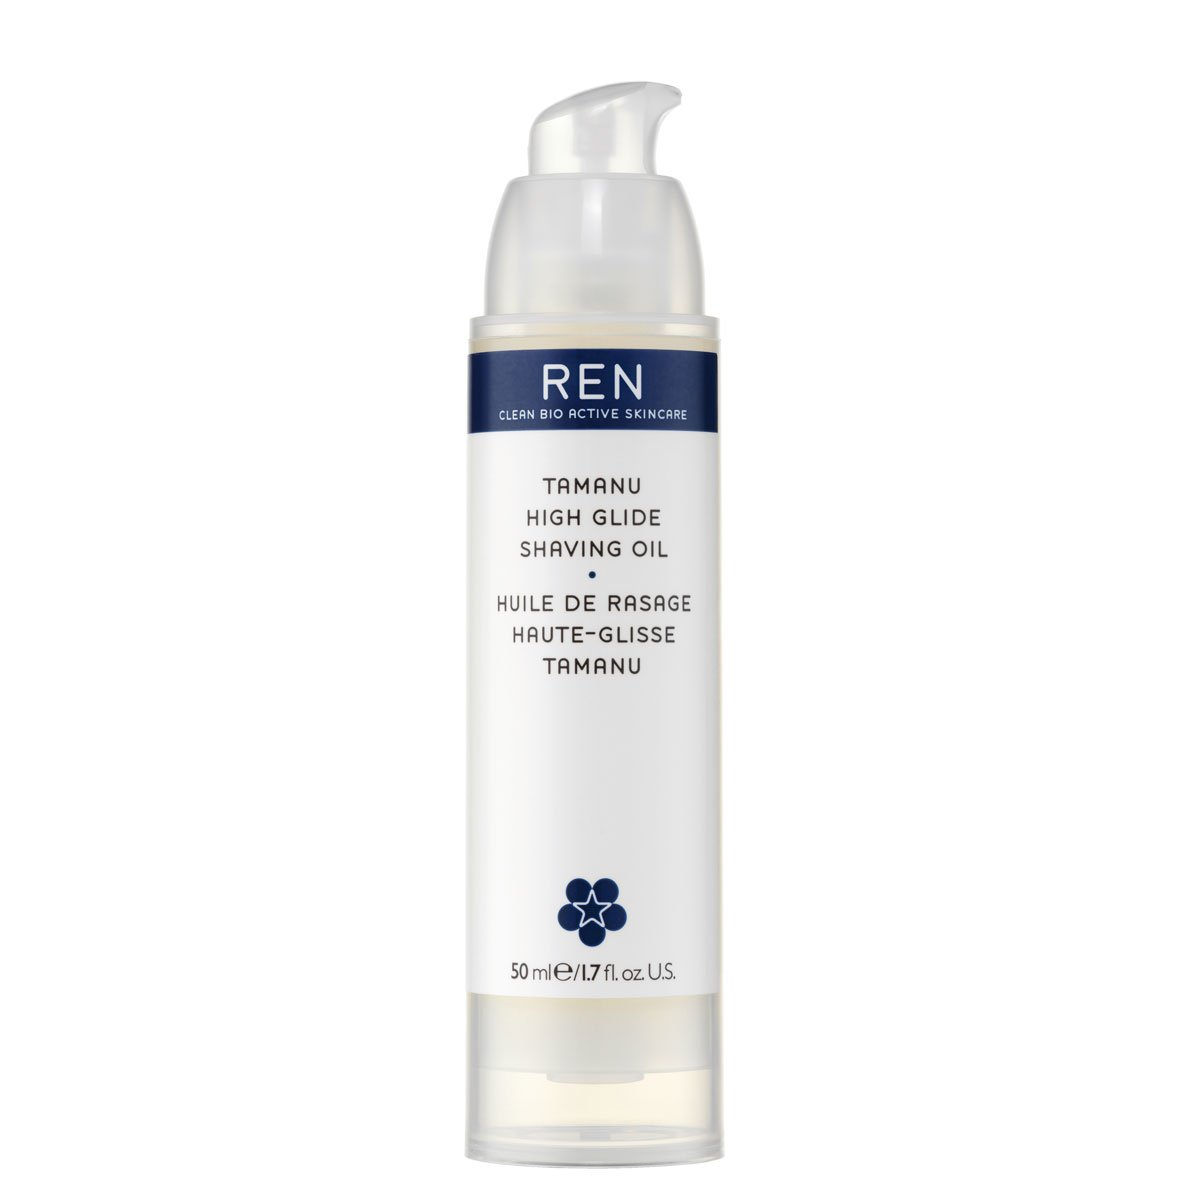 Ren tamanu high glide shaving oil 1.7fl oz 30764 28003076